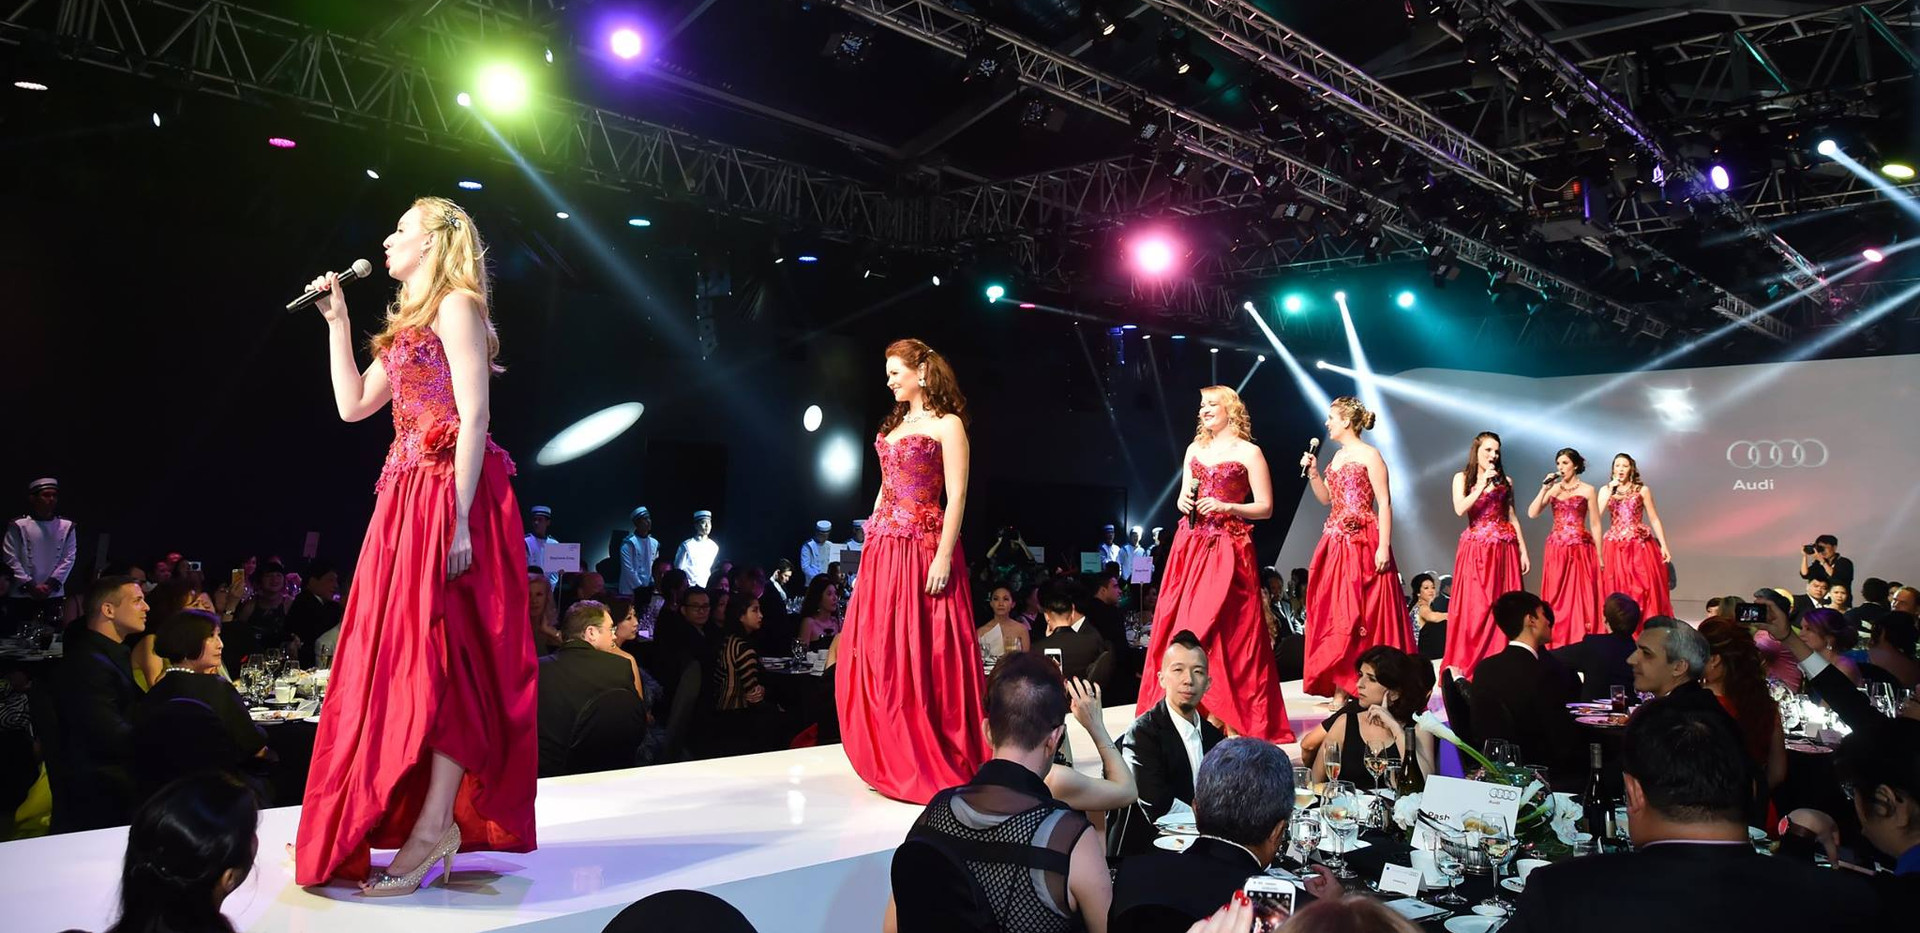 Performing with The 7 Sopranos in Singapore